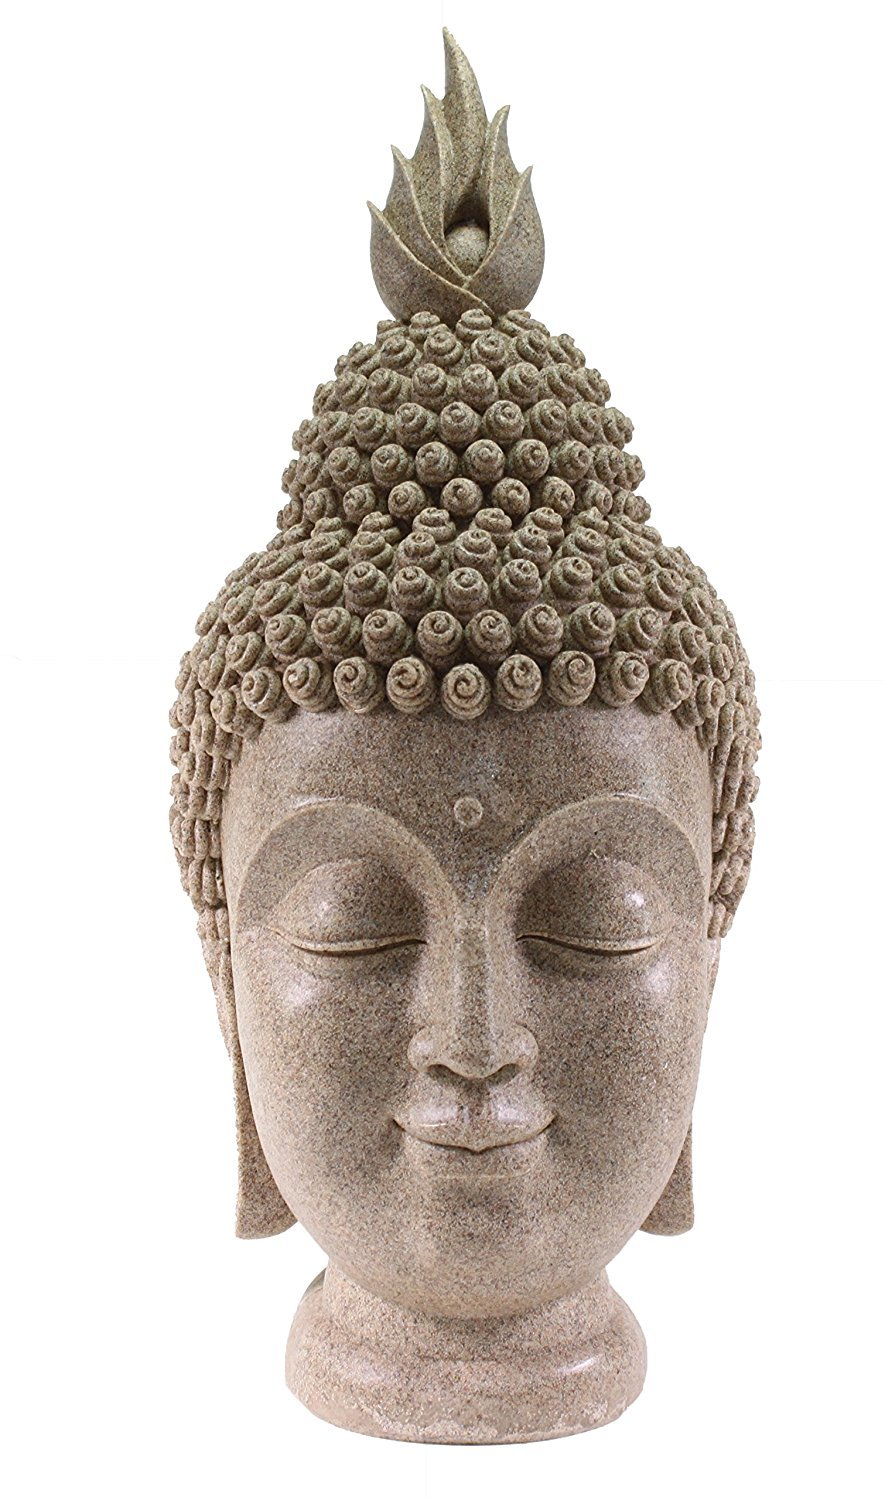 Smiling Meditating Buddha Shakyamuni Head Statue Large 15'' Tall Blessing Mercy & Love by We pay your sales tax